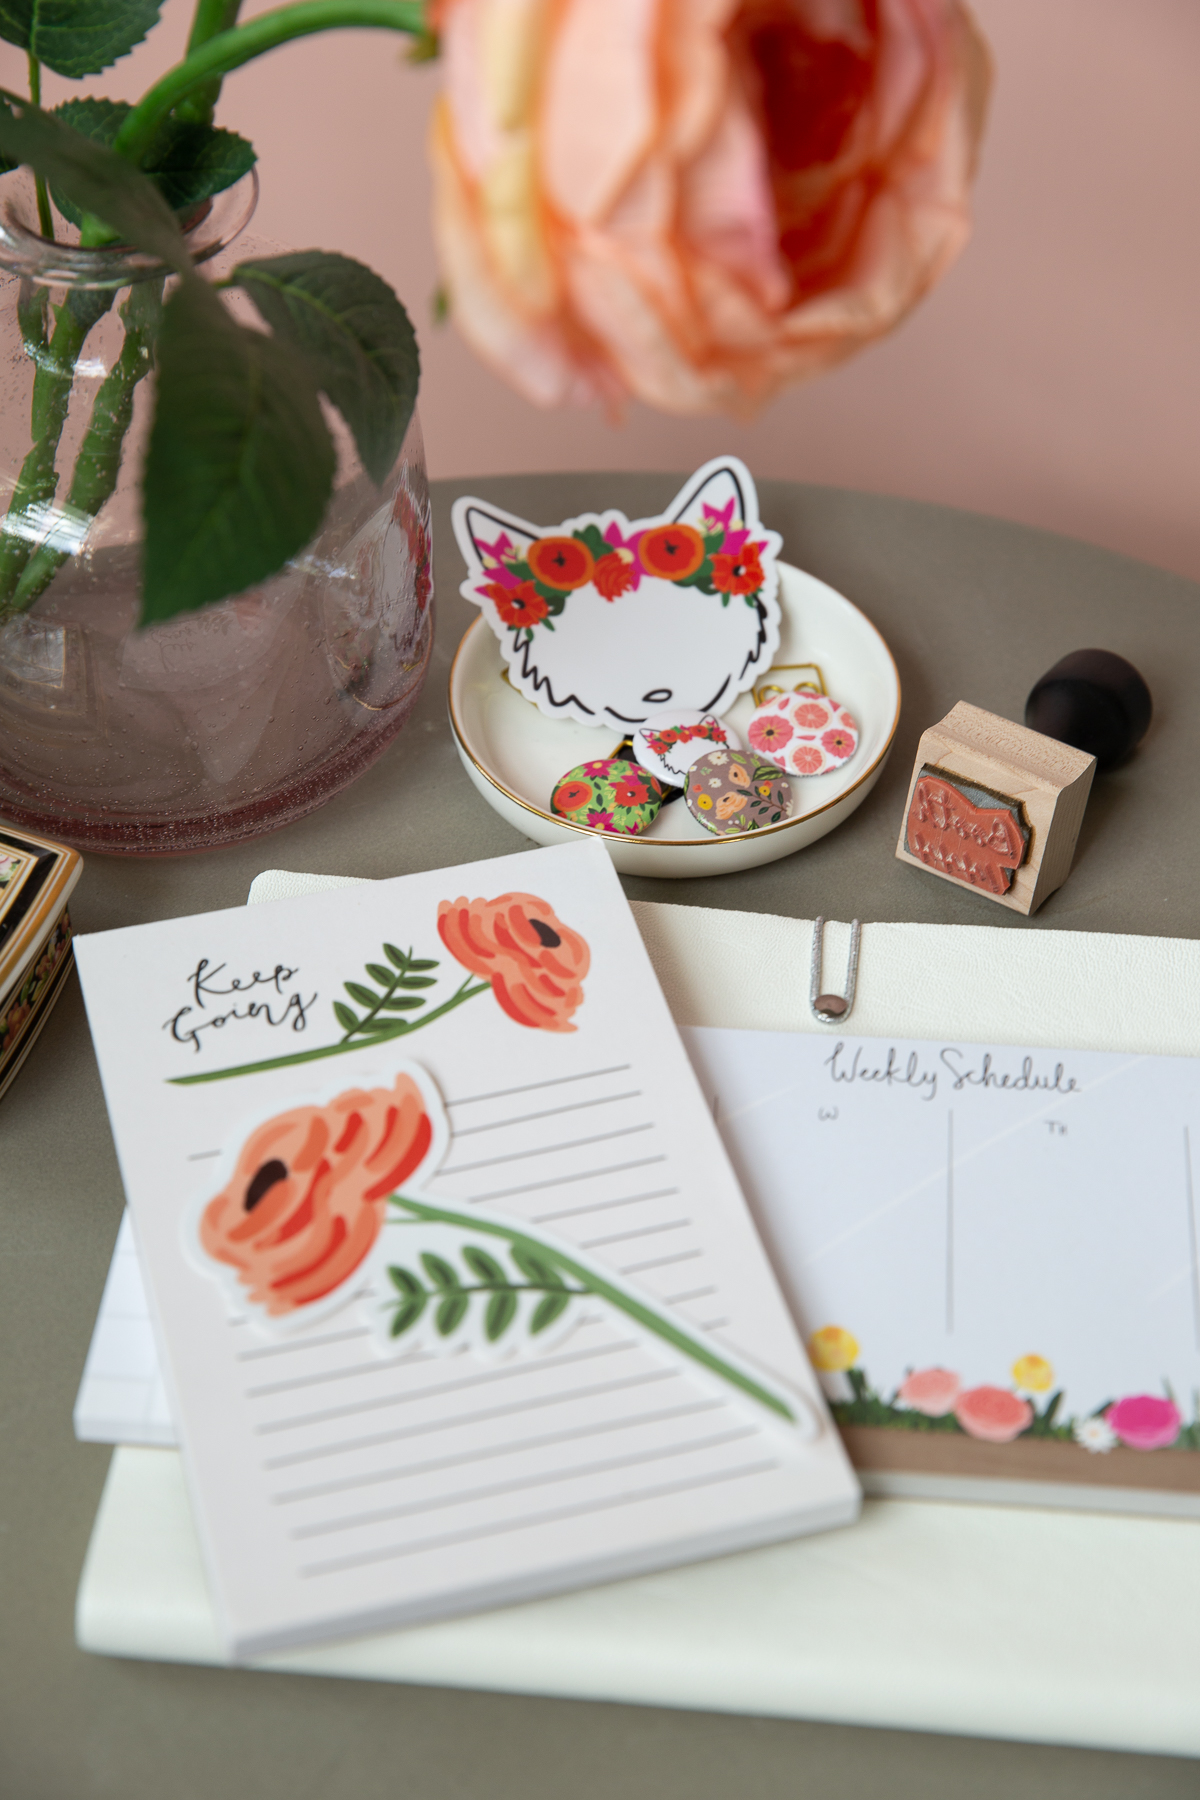 Bloomwolf Studio stationery products